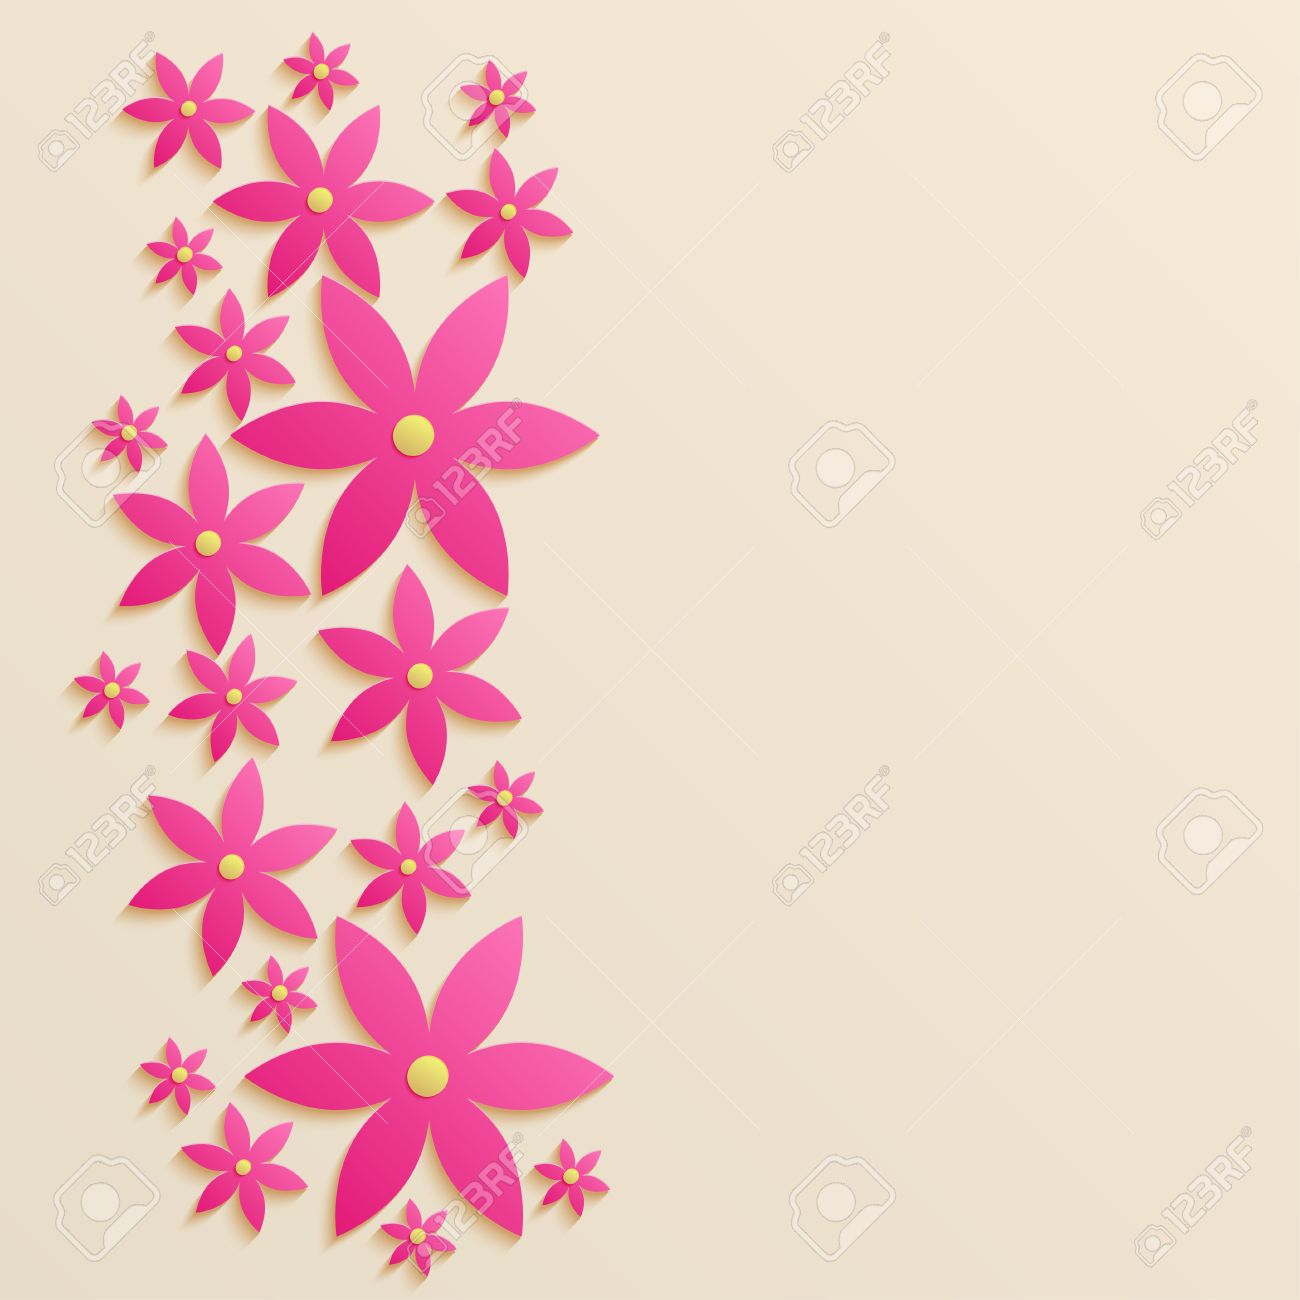 Paper Background With Pink Flowers 3d Paper Illustration Royalty